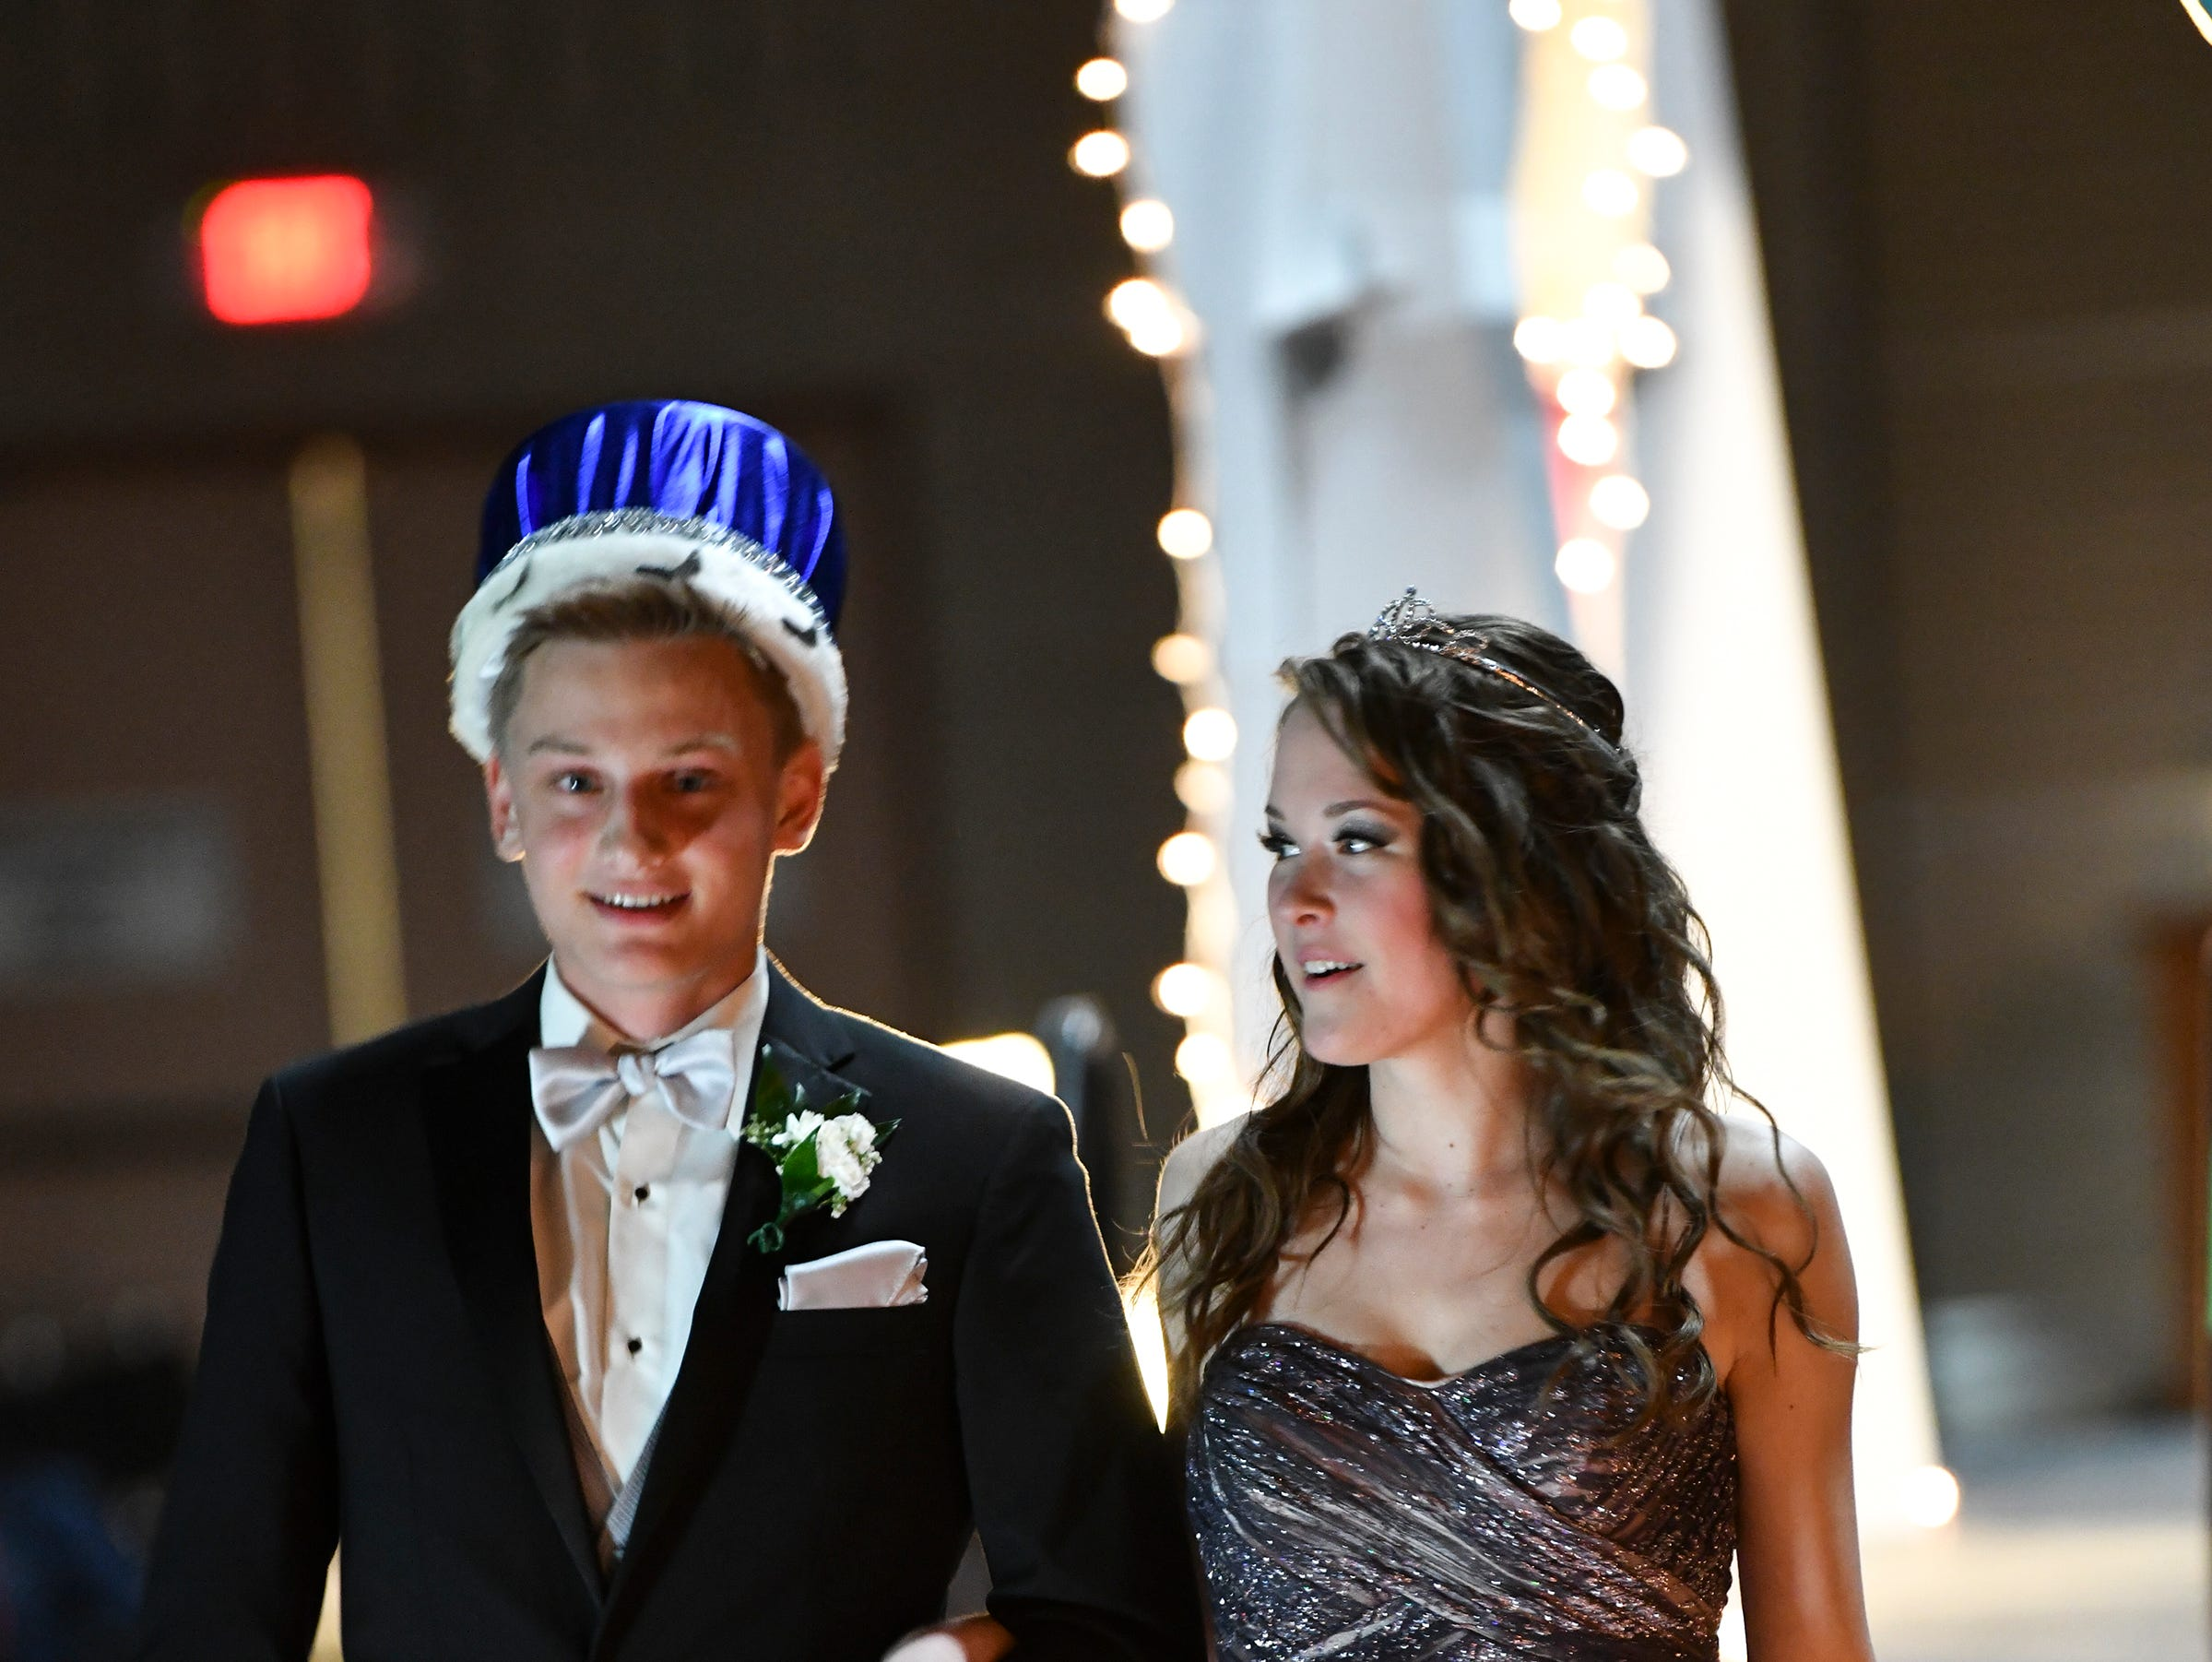 Alex Virnig and Izzy Kicala were named king and queen during Sartell High School's prom Saturday, May 4, at the River's Edge Convention Center in St. Cloud.